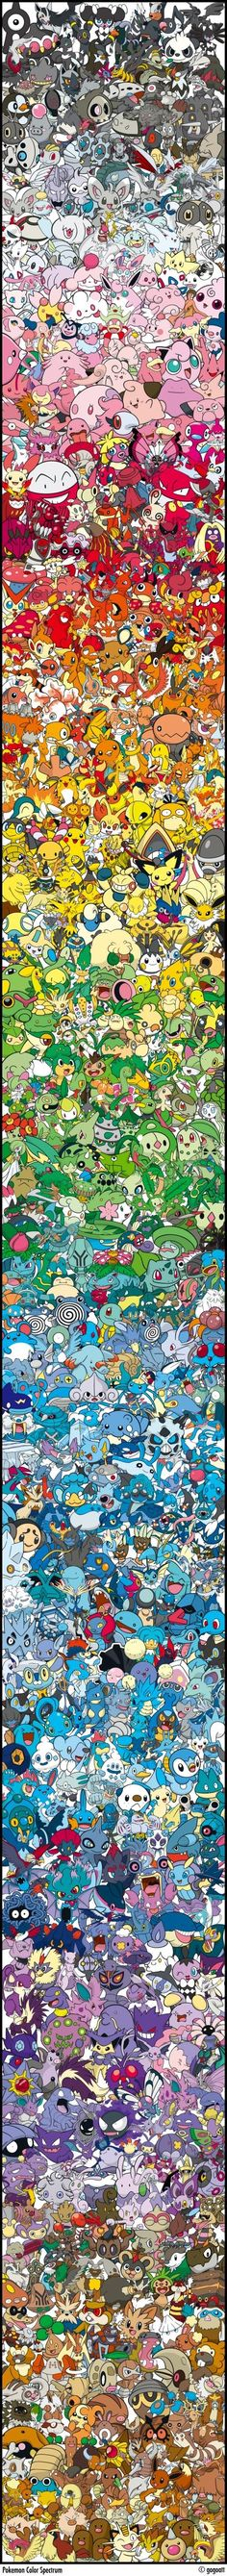 Every Single Pokémon (Gen 1-6) Arranged by Color. Not including Mega Evolutions.